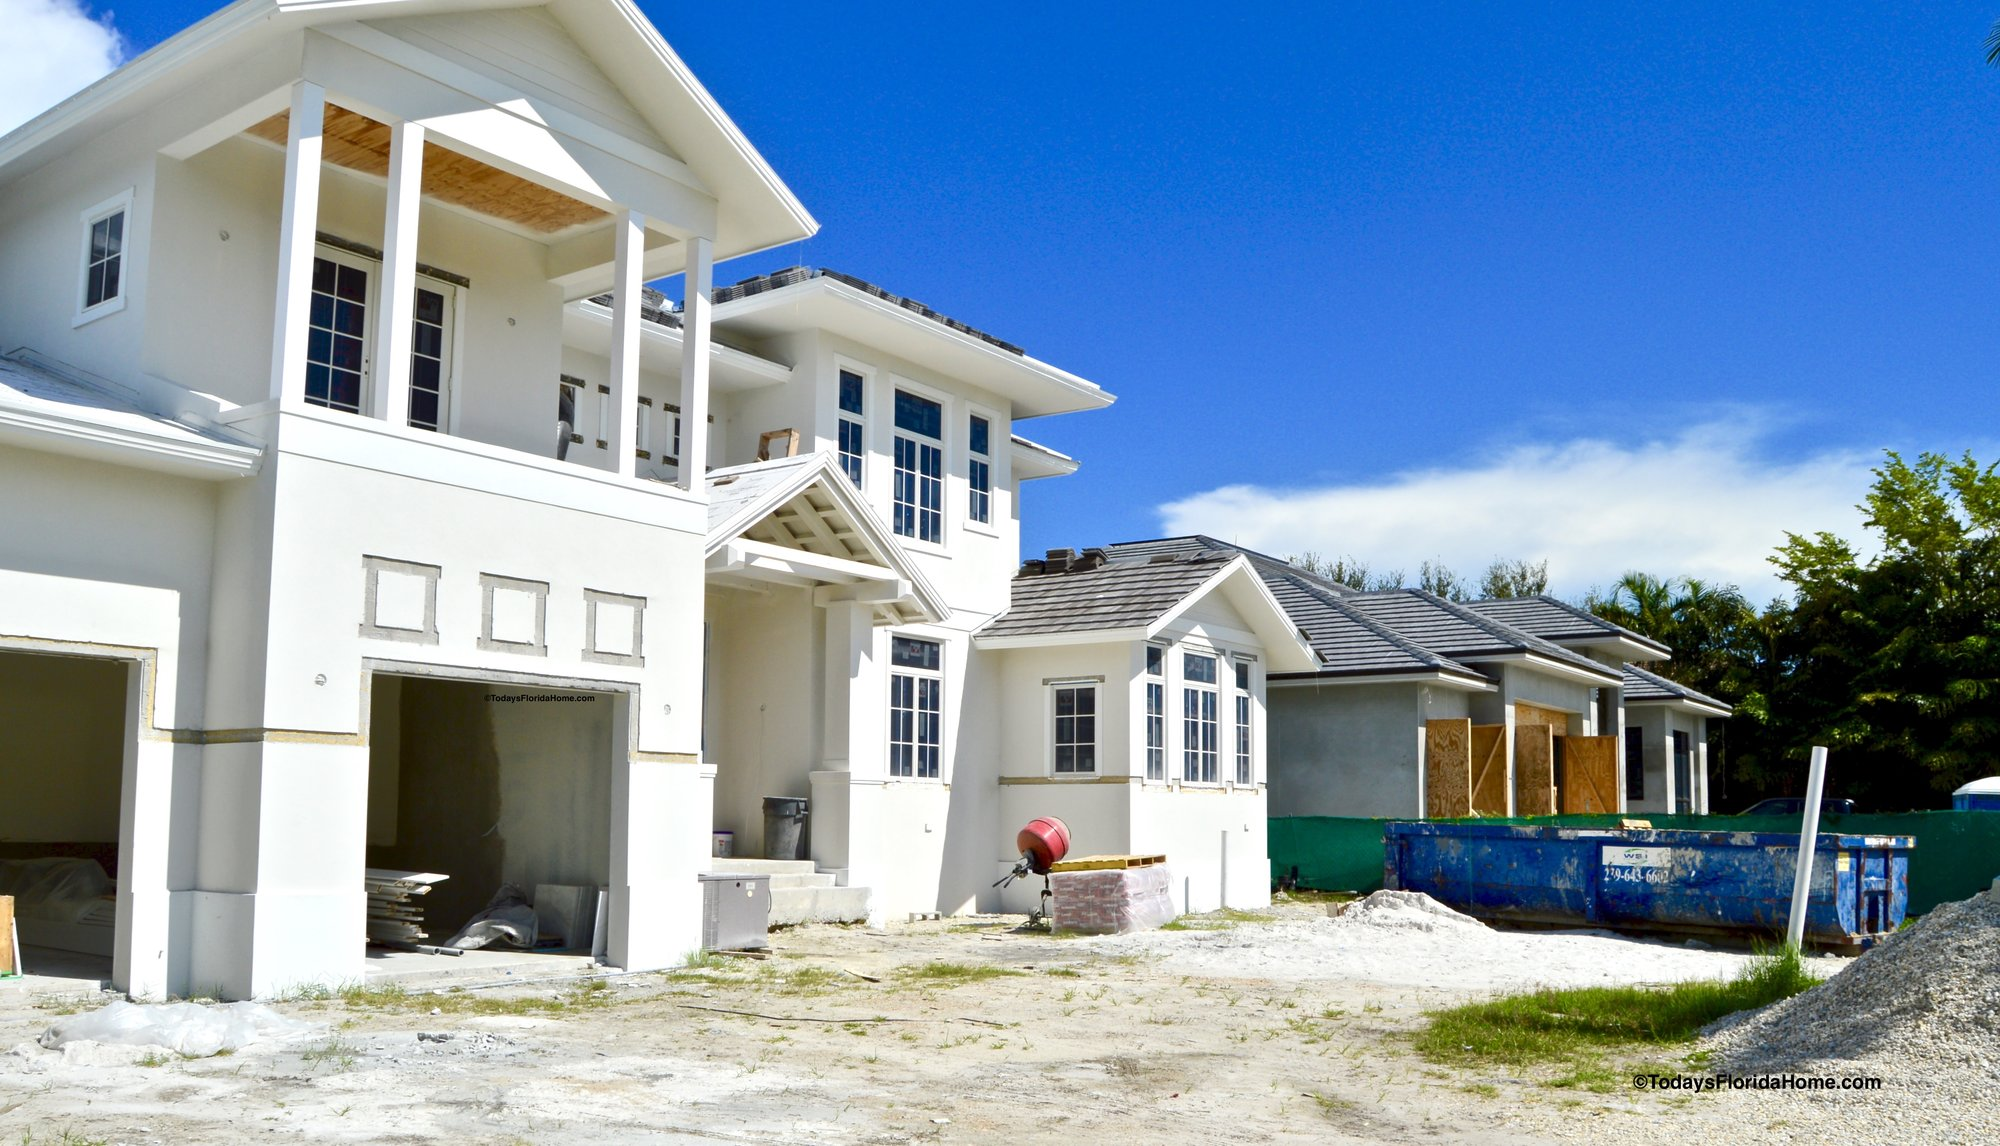 New Homes Coquina Sands, New Homes Naples, New Construction Naples, Florida New Homes, New Waterfront Homes Naples, New Florida Waterfront Homes, Coquina Sands, Gulf Shore Blvd, New Gulf Access Homes, Homes near the beach, Naples Beach Homes